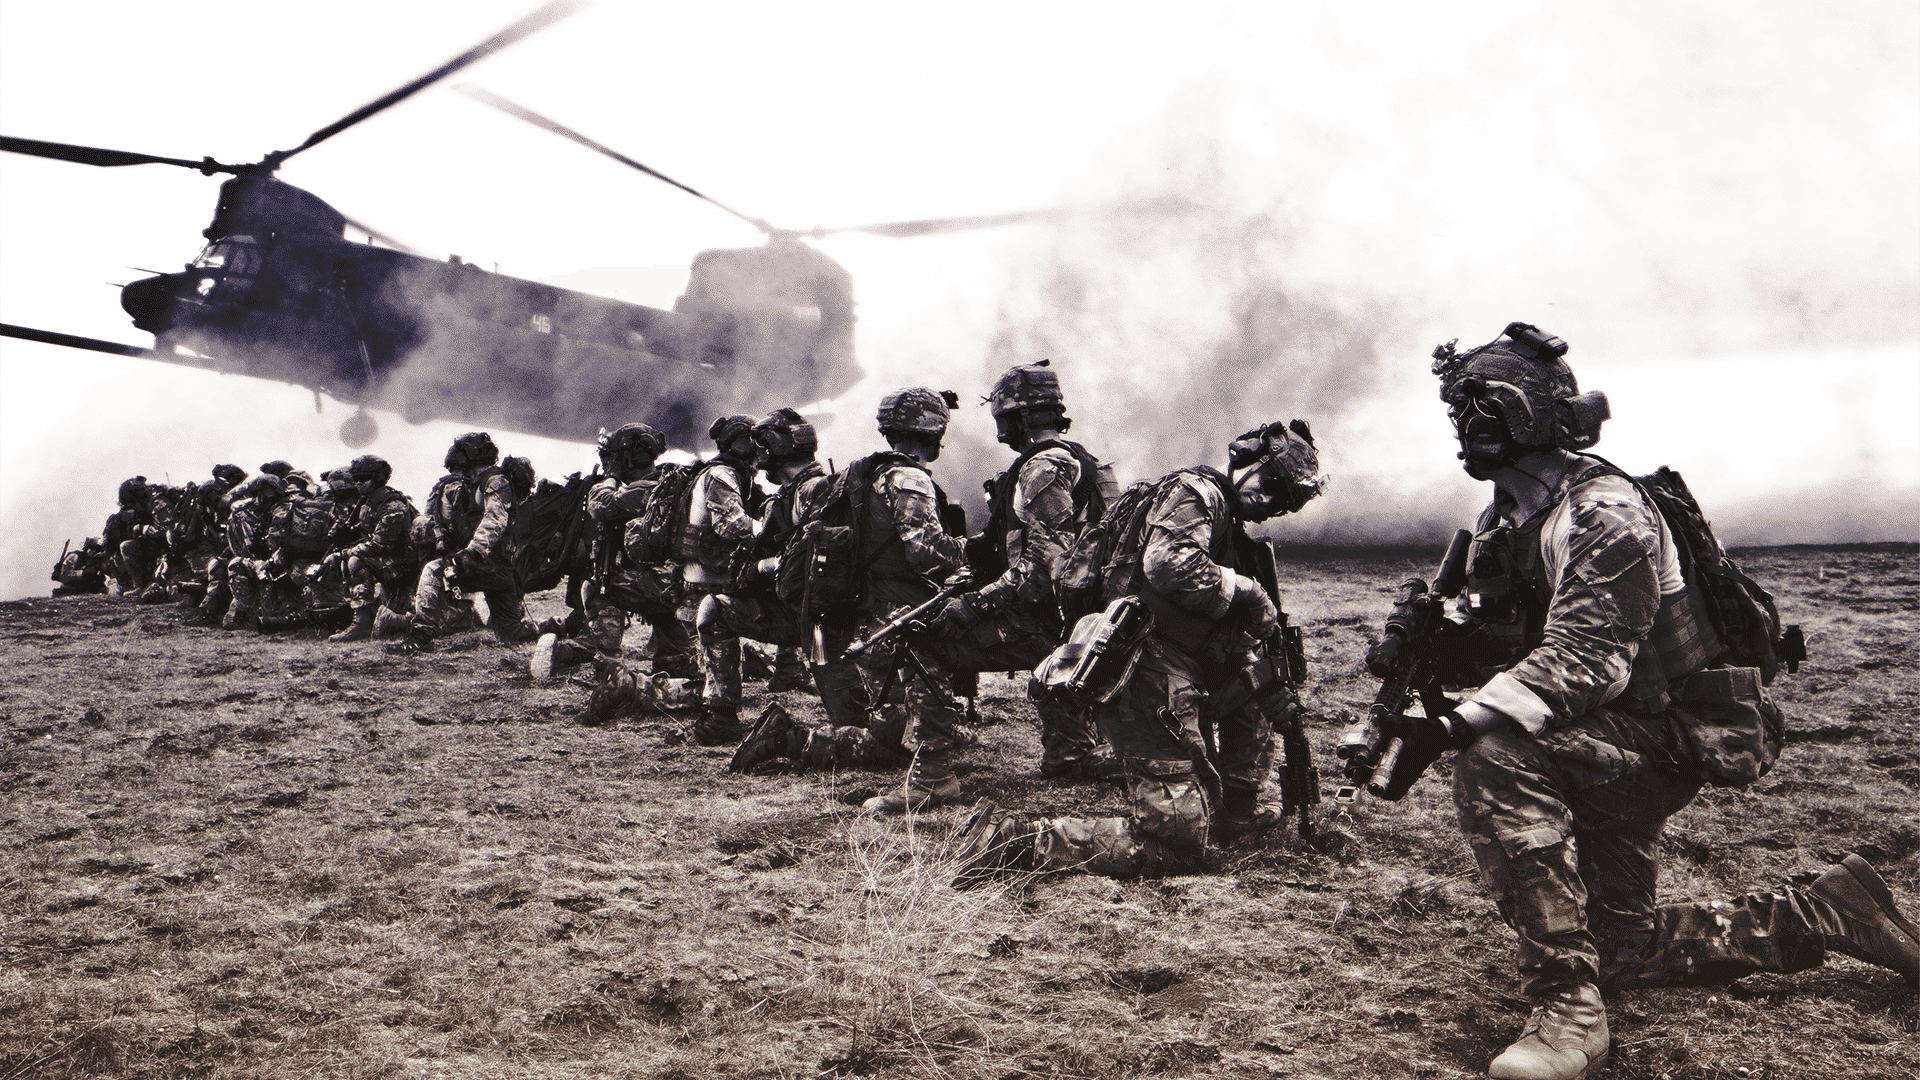 U.S. Army Rangers, assigned to 2nd Battalion, 75th Ranger Regiment. Photo by Spc. Steven Hitchcock.